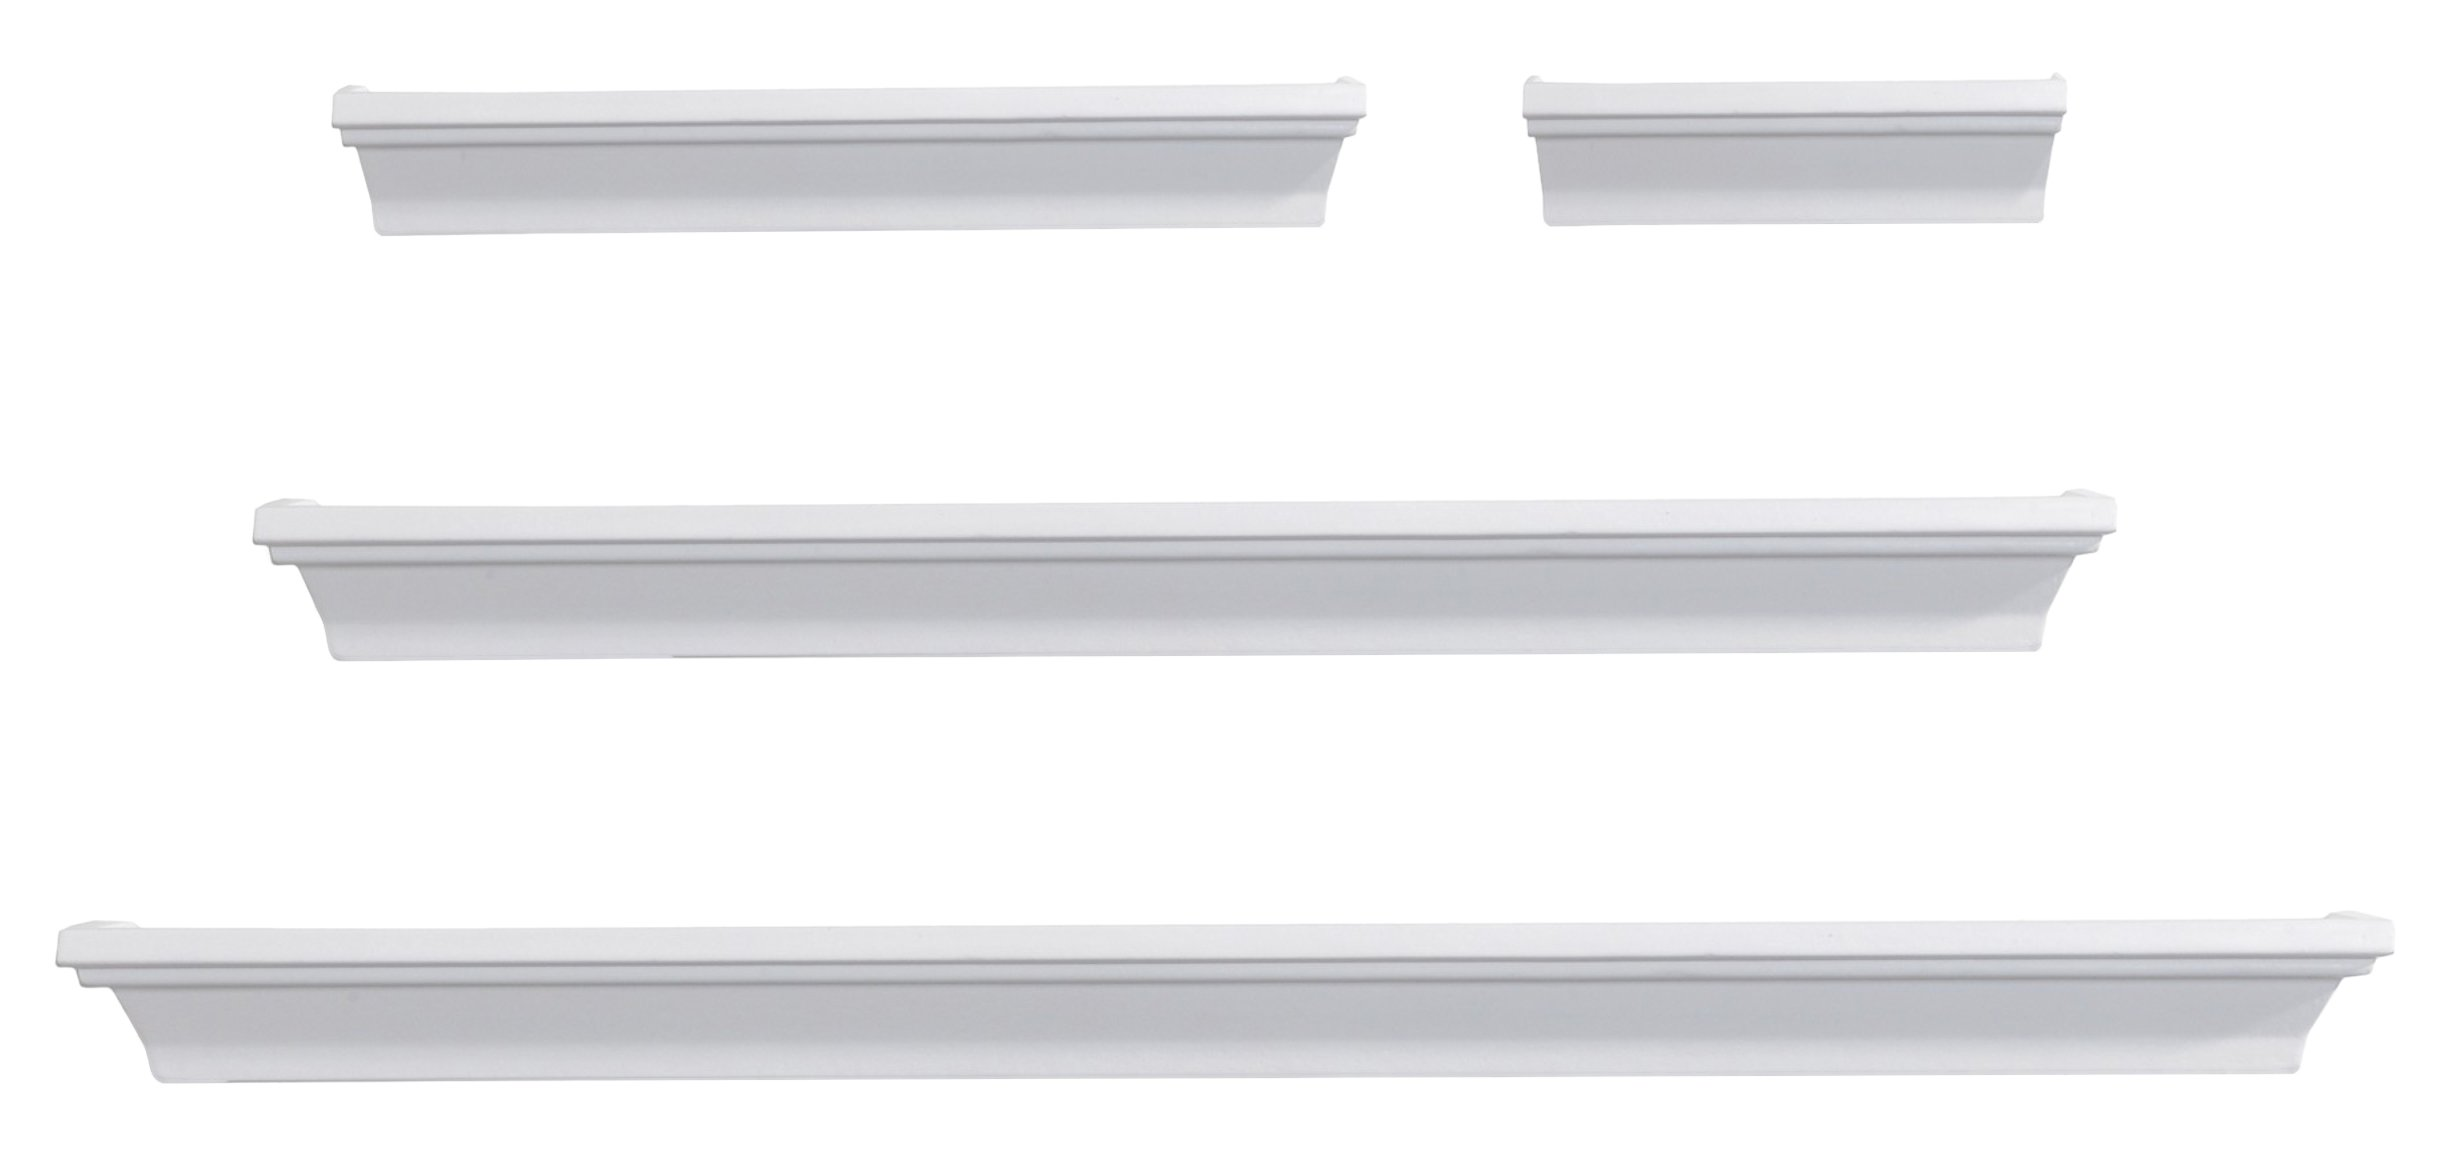 MELANNCO Wall Shelves, Set of 4, White by MELANNCO